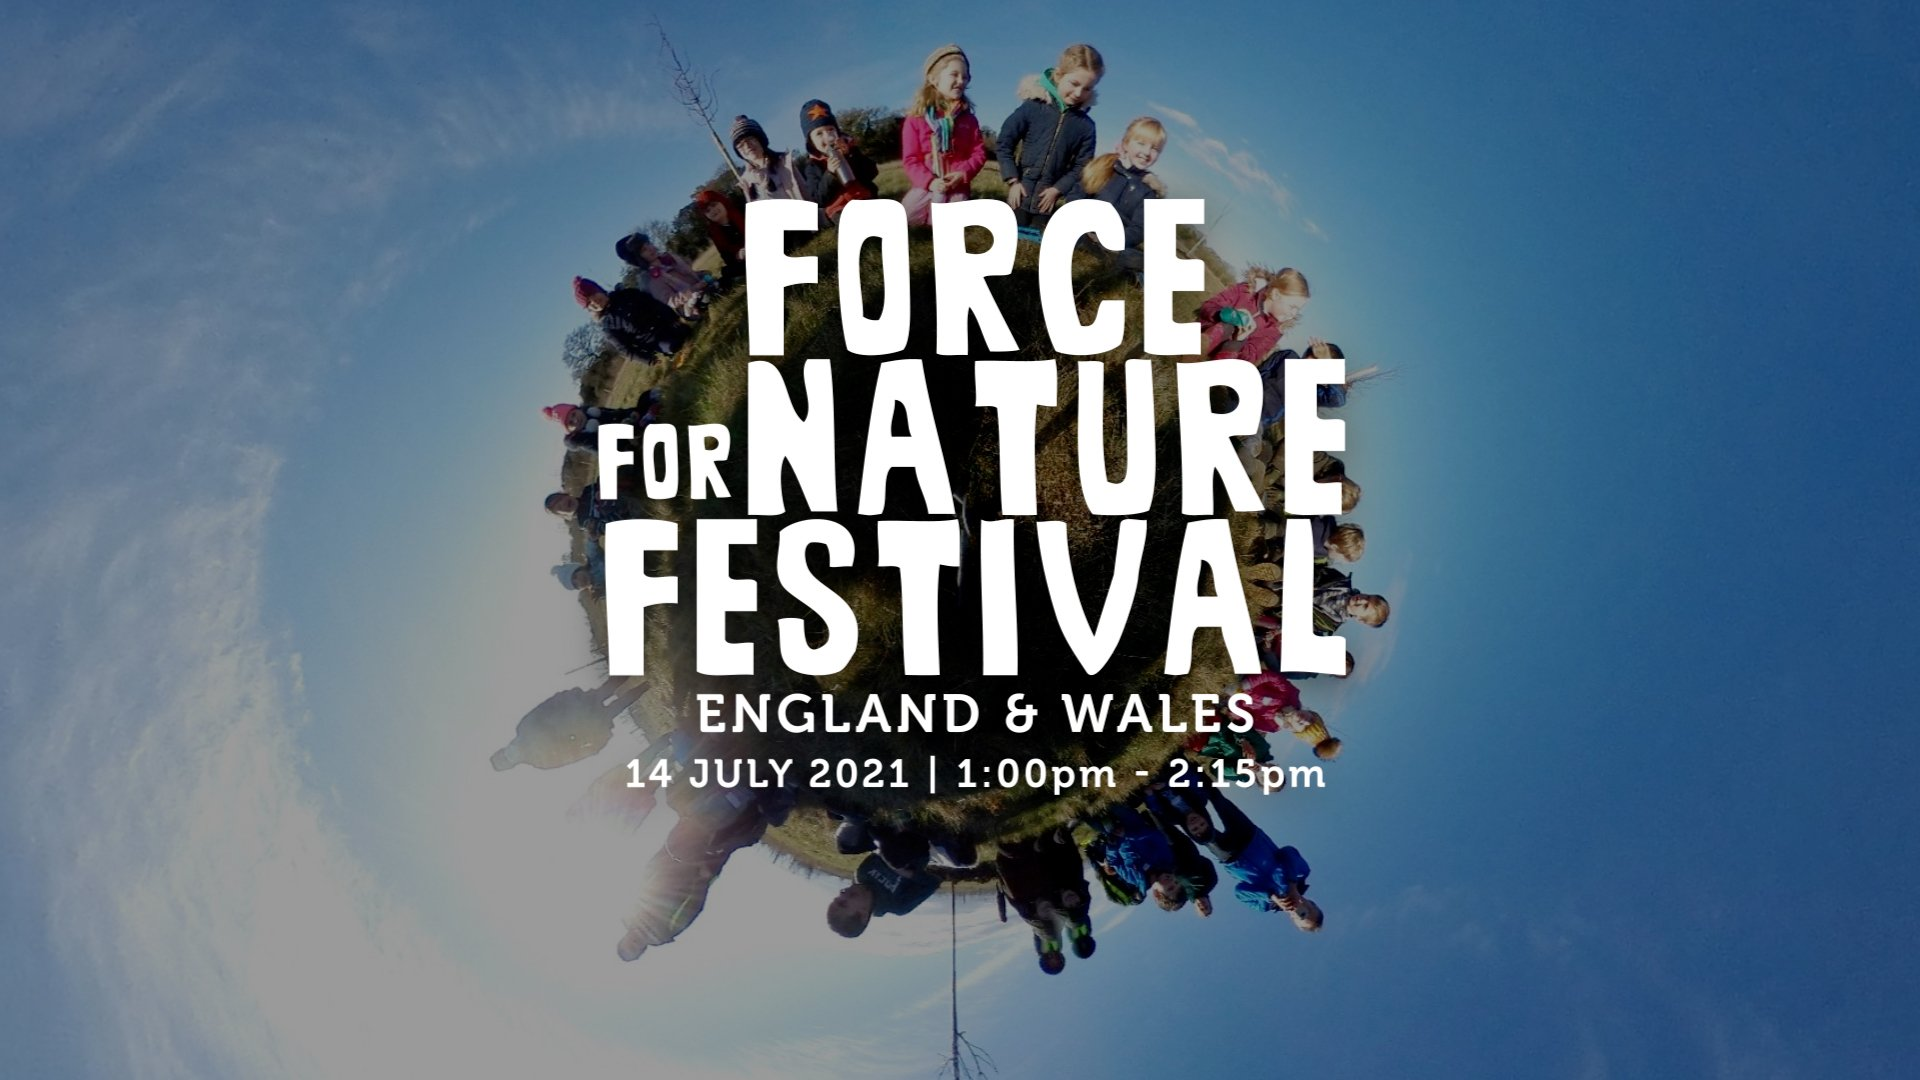 It's Festival Day – Book a ticket and join us at 1pm to 2:15pm today